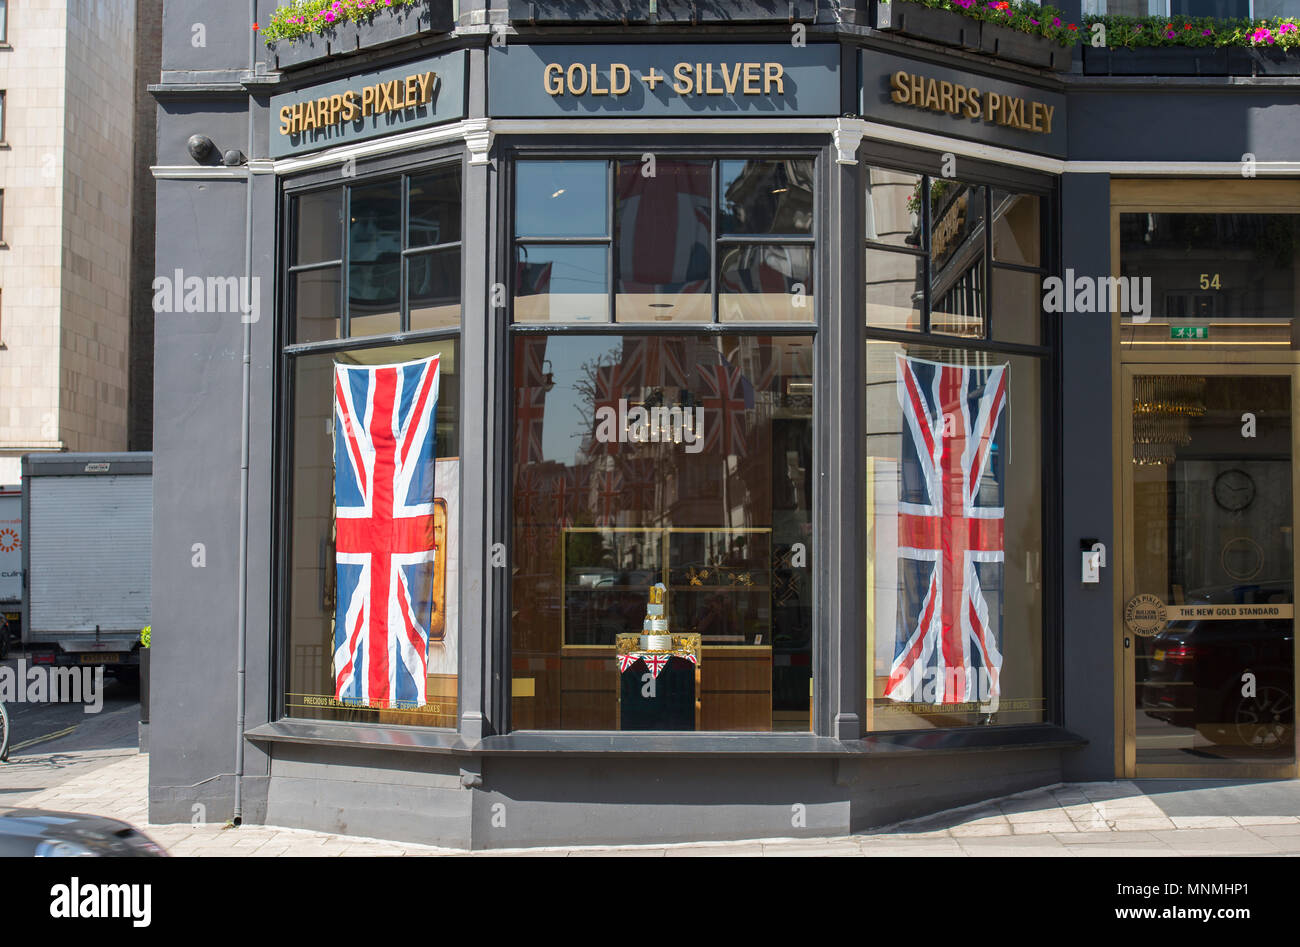 West End, London, UK. 18 May, 2018. Royal Wedding festivities among the retailers in London's premier shopping streets of the West End on the day before the big event in Windsor. A wedding cake decorated with Gold bullion at Sharps Pixley in St James's St. Credit: Malcolm Park/Alamy Live News. - Stock Image